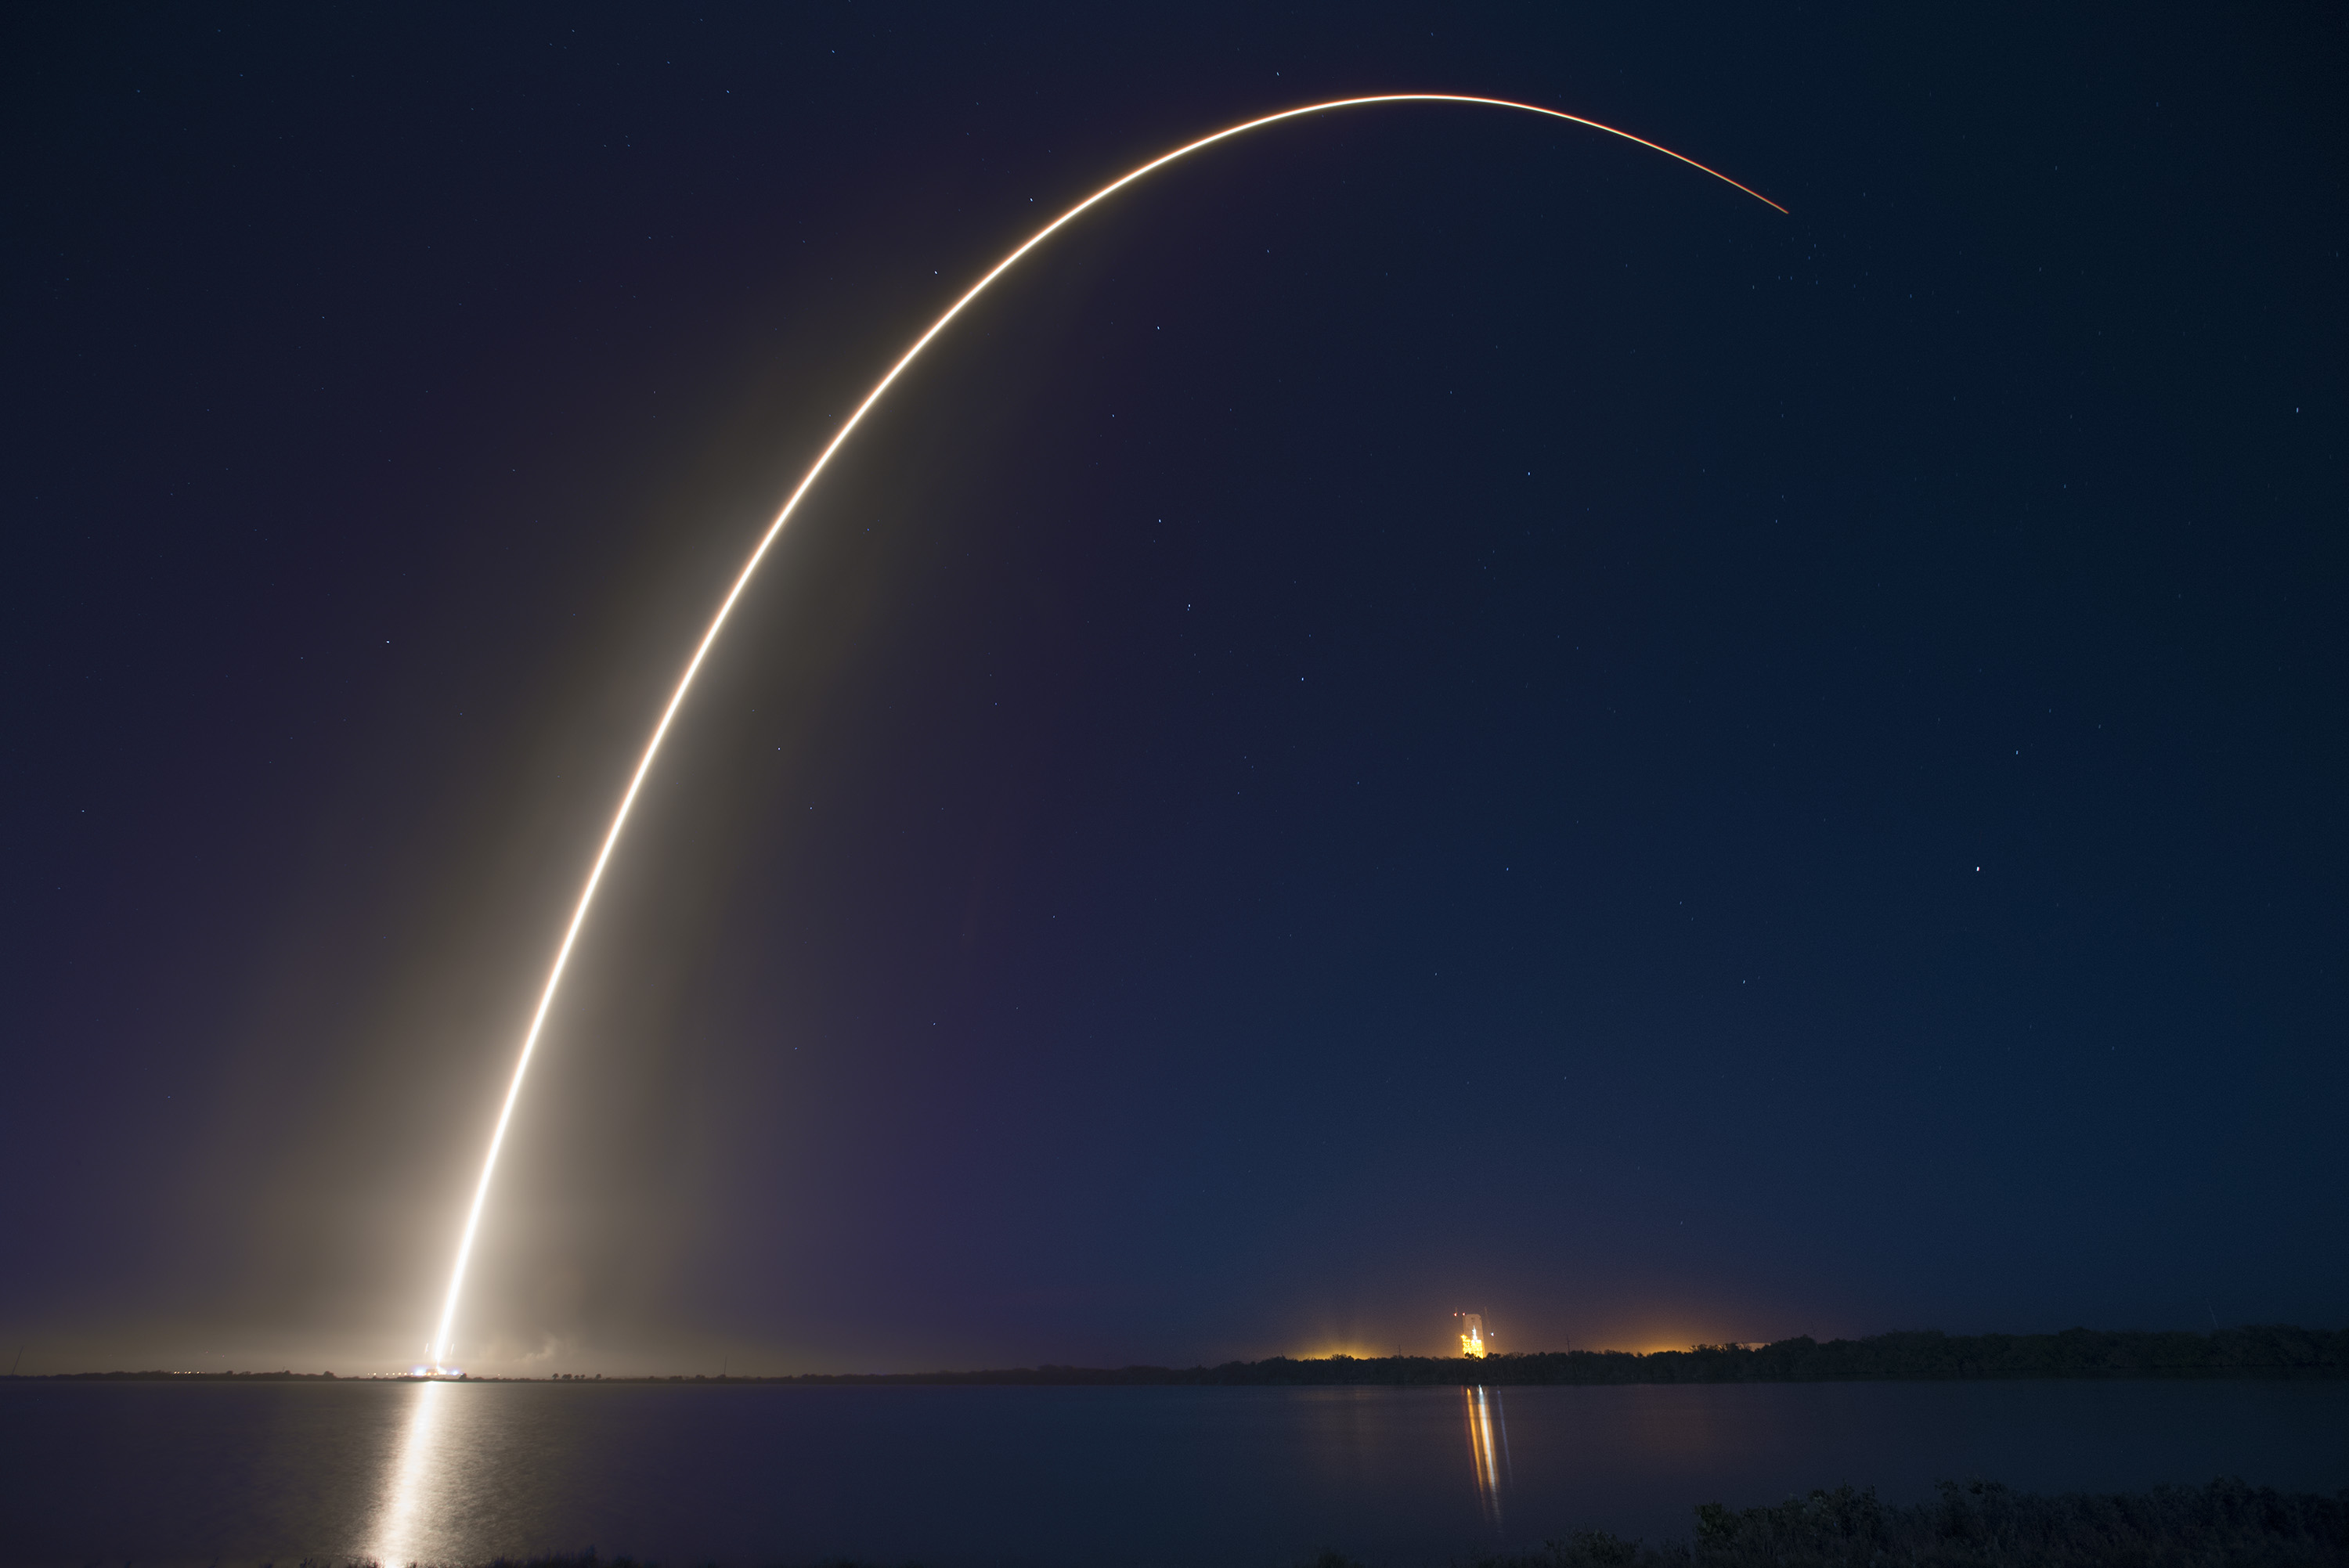 Vodafone and Nokia are Taking 4G into Orbit